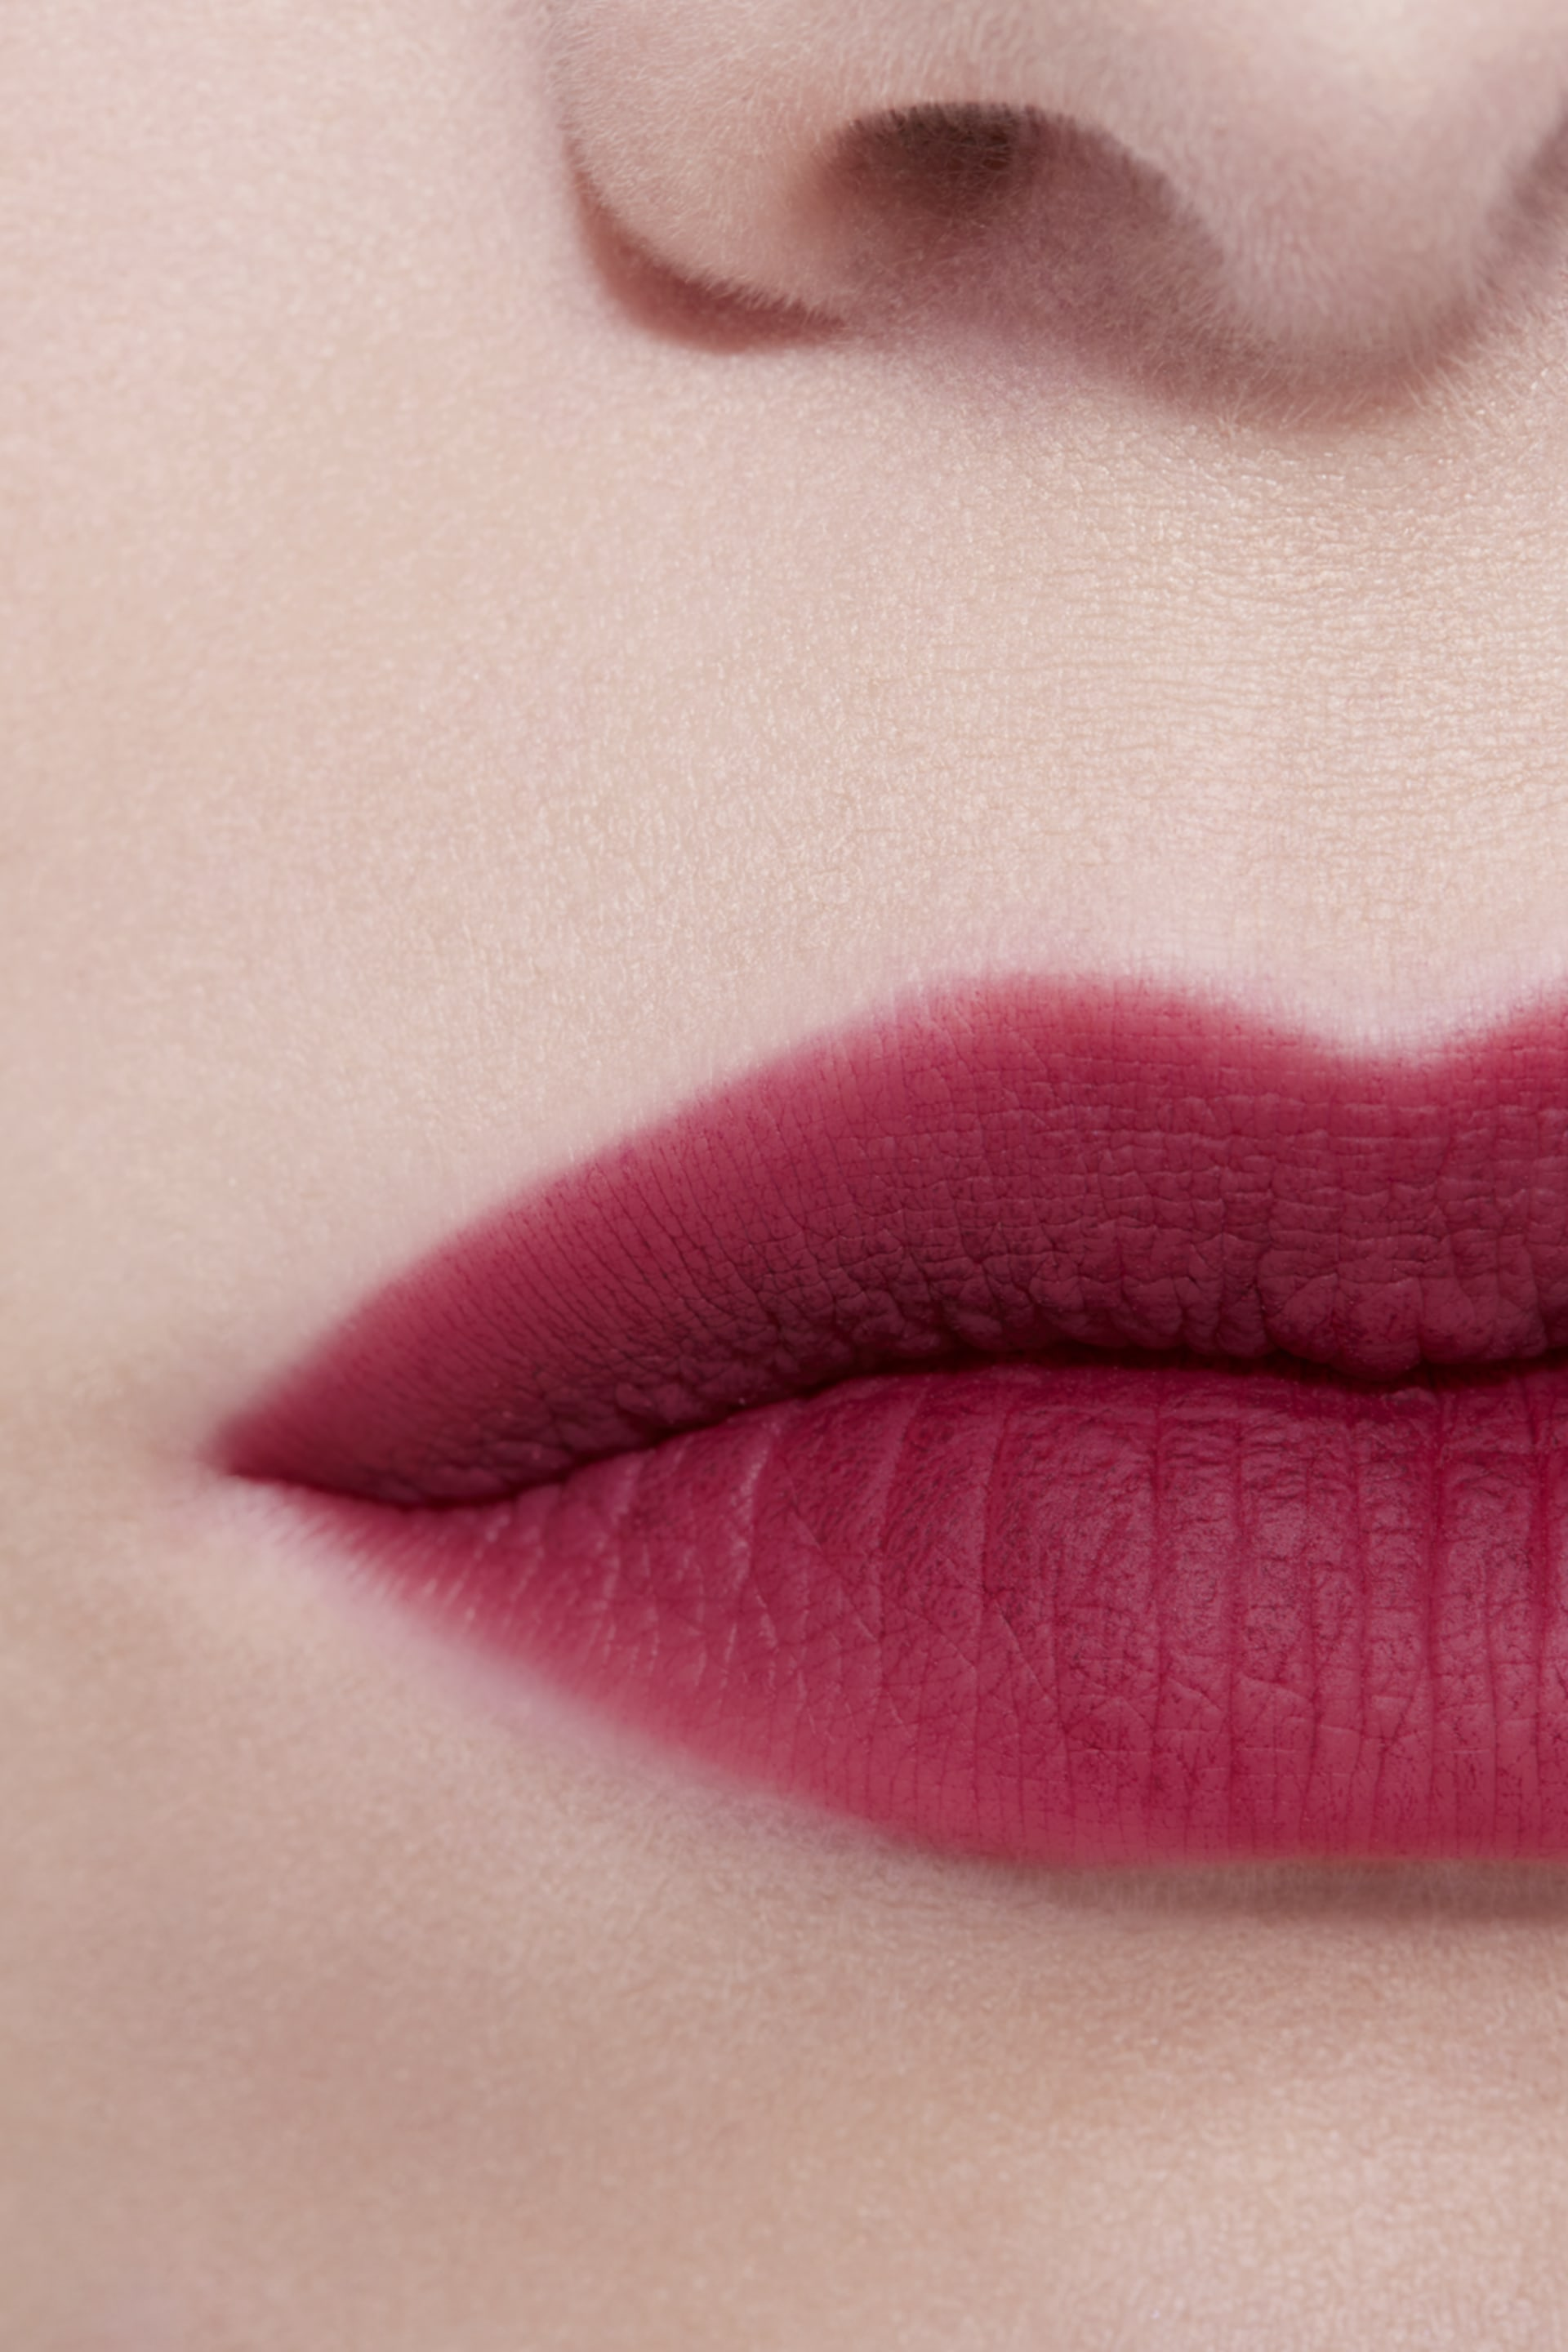 Application makeup visual 3 - ROUGE ALLURE LIQUID POWDER 970 - RUBY RED